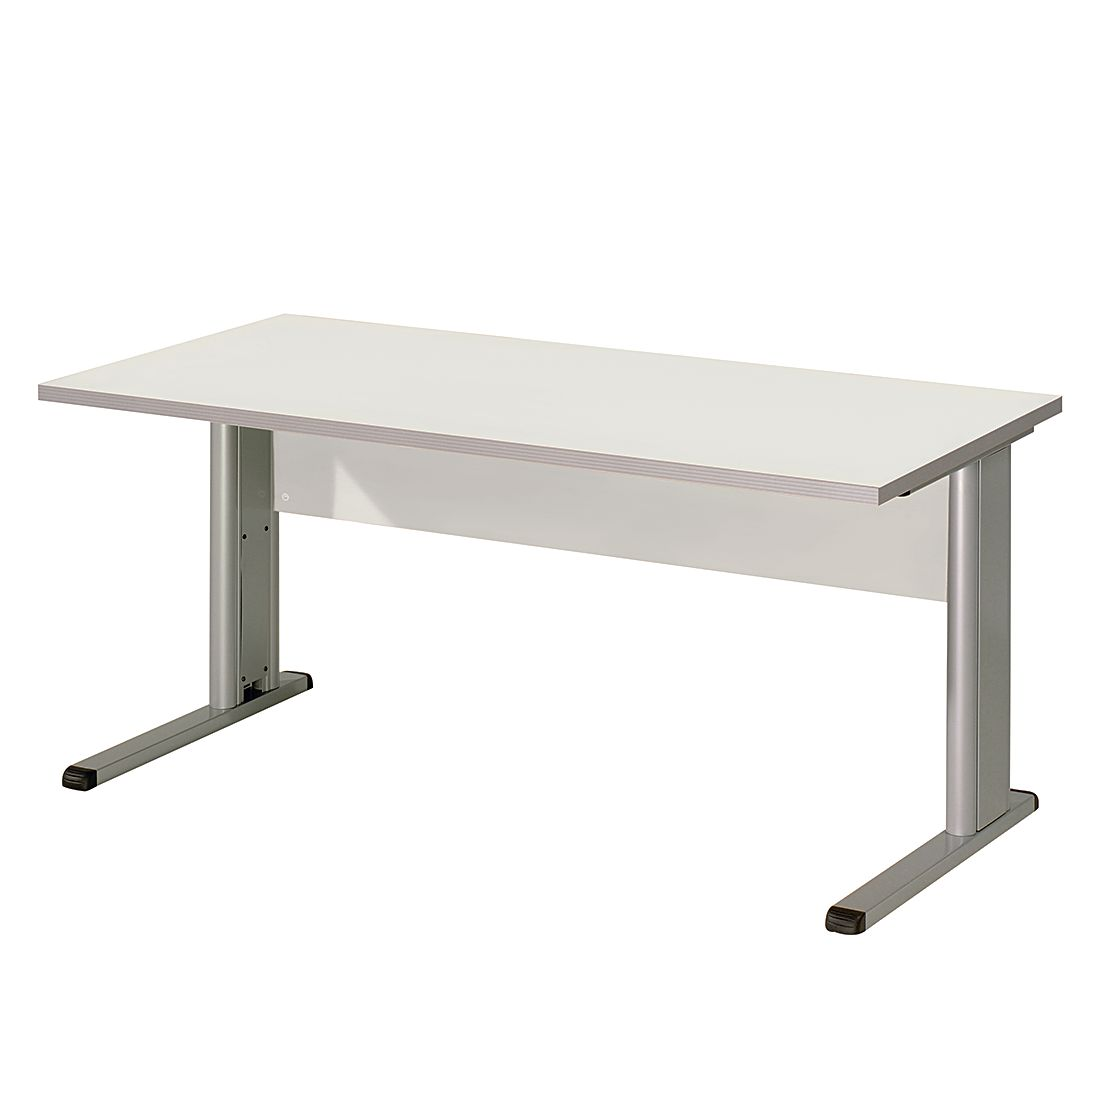 Home 24 - Table de bureau kirk iv - gris clair - plateau de table : 120 x 80 cm, wellemöbel